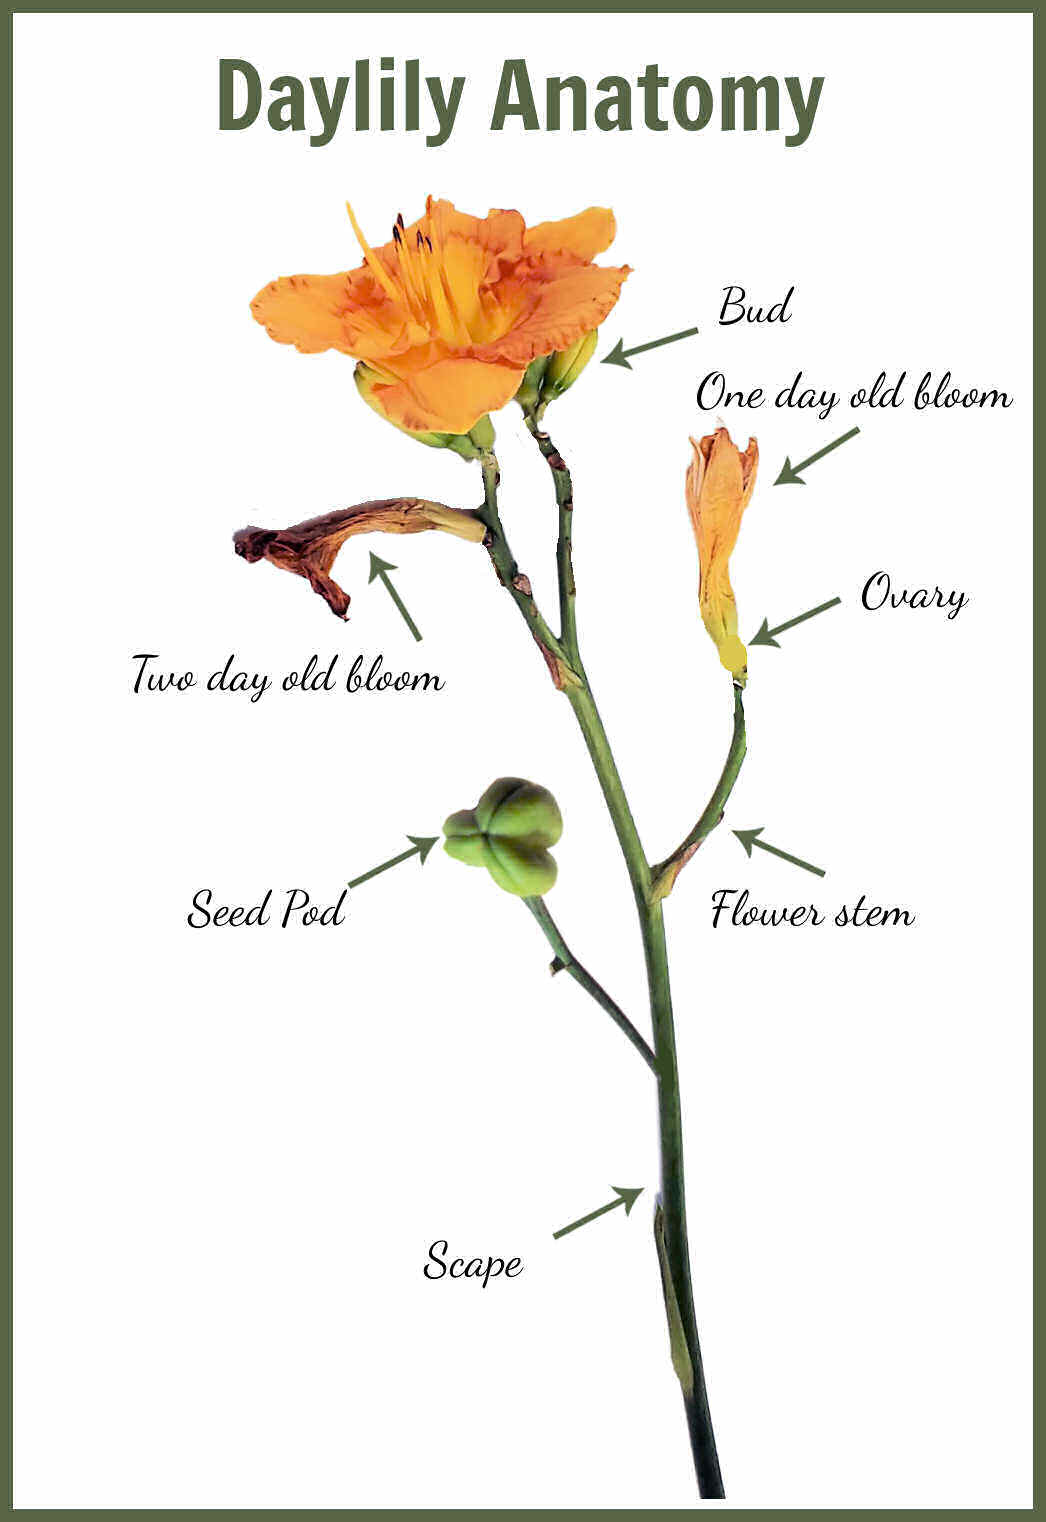 Image showing parts of a daylily with arrows.